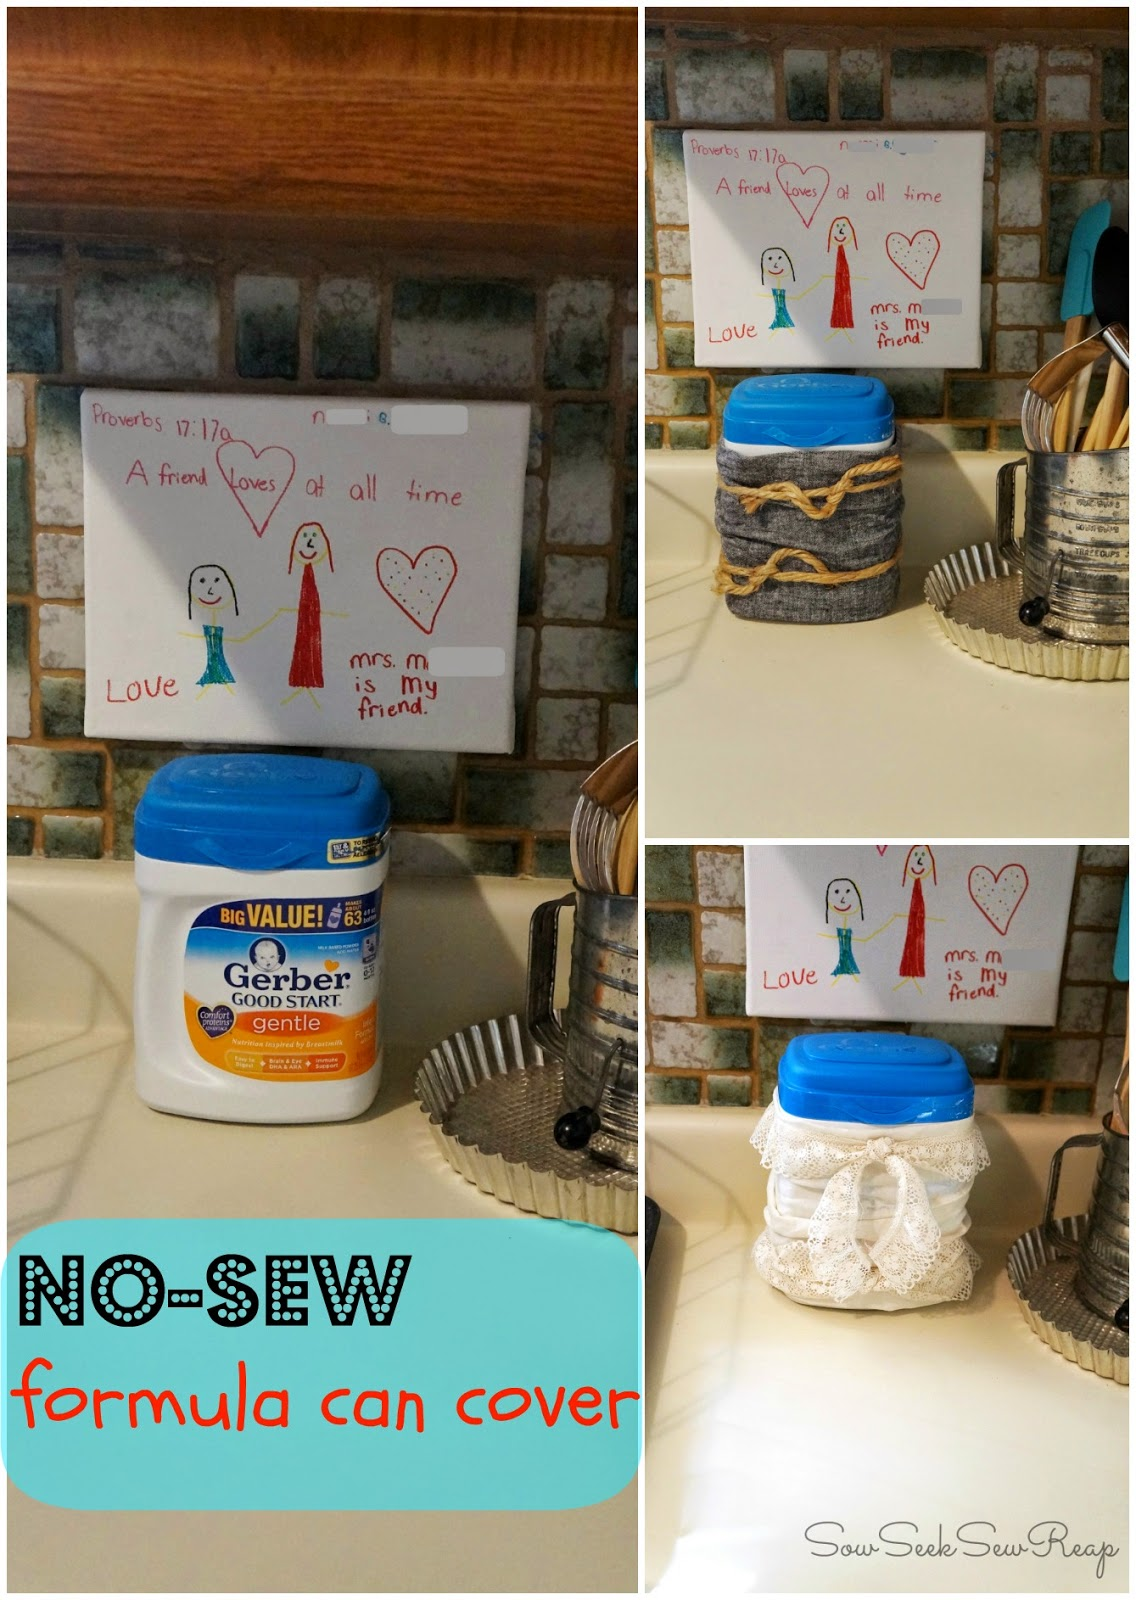 NO SEW CRAFTS, NO SEW CAN COVER, NO SEW BABY FORMULA COVER, RECYCLE FABRIC